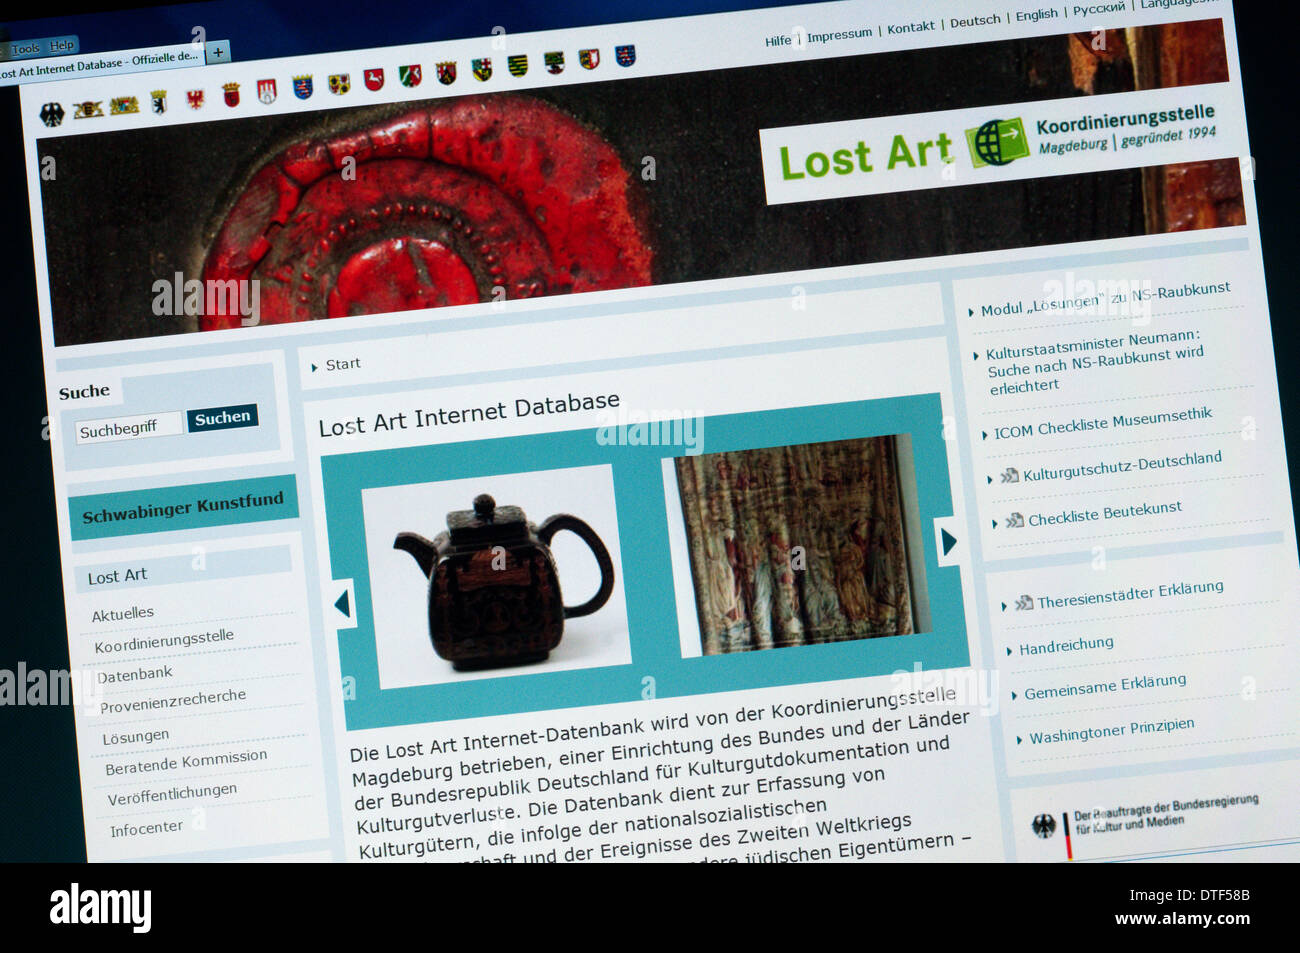 The Lost Art Internet Database. Stock Photo